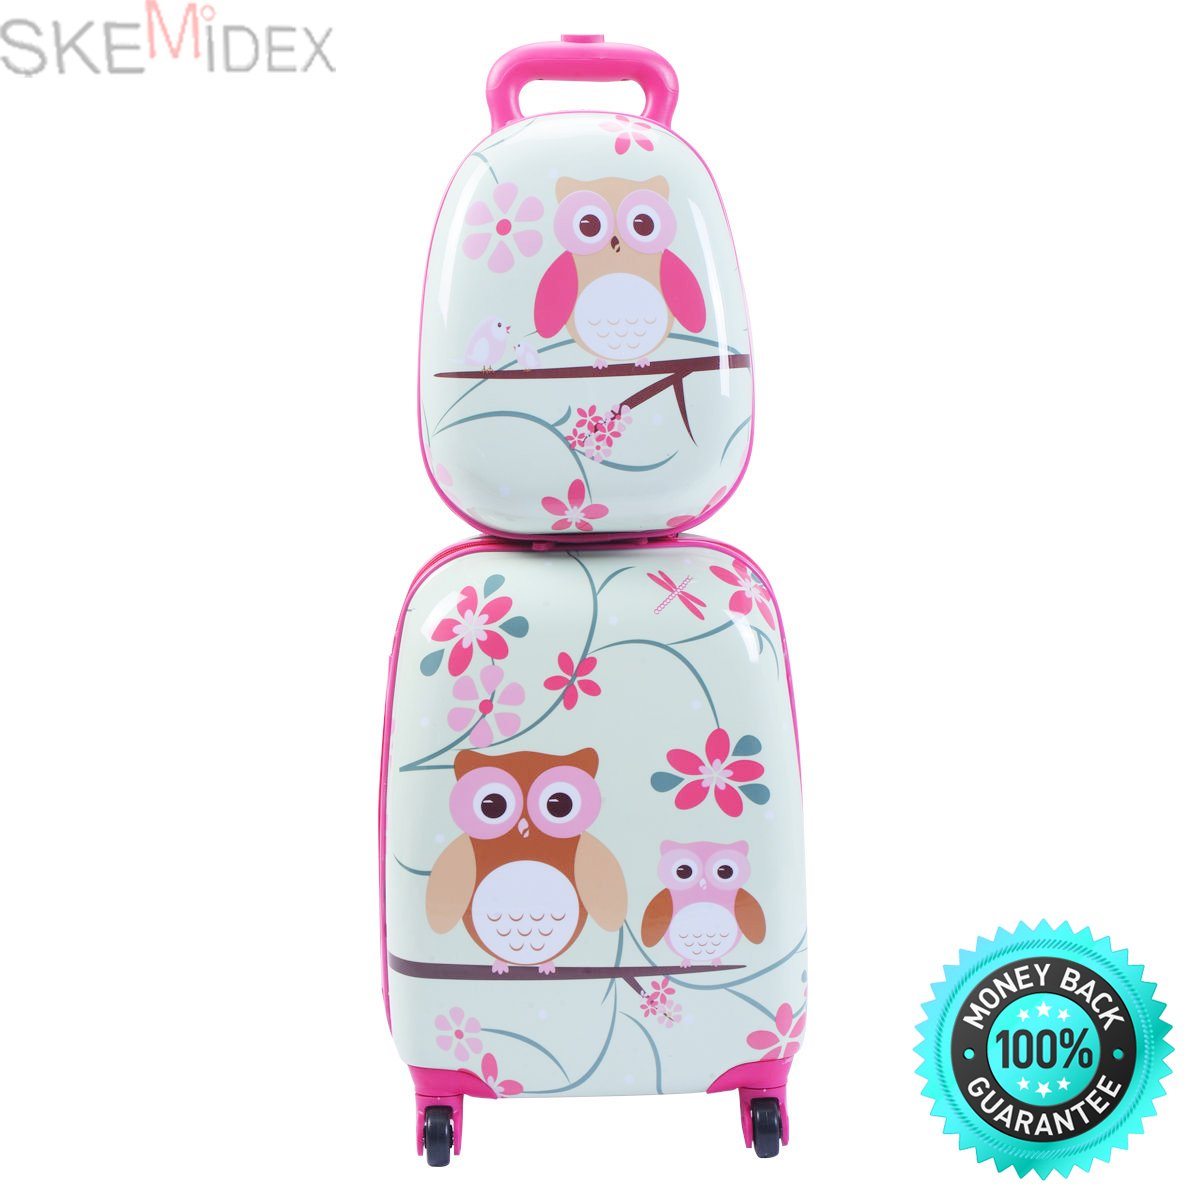 SKEMiDEX---2Pc 12'' 16'' Kids Luggage Set Suitcase Backpack School Travel Trolley ABS New. This adorable luggage set including a cute animal shaped suitcase and backpack is perfect for travel